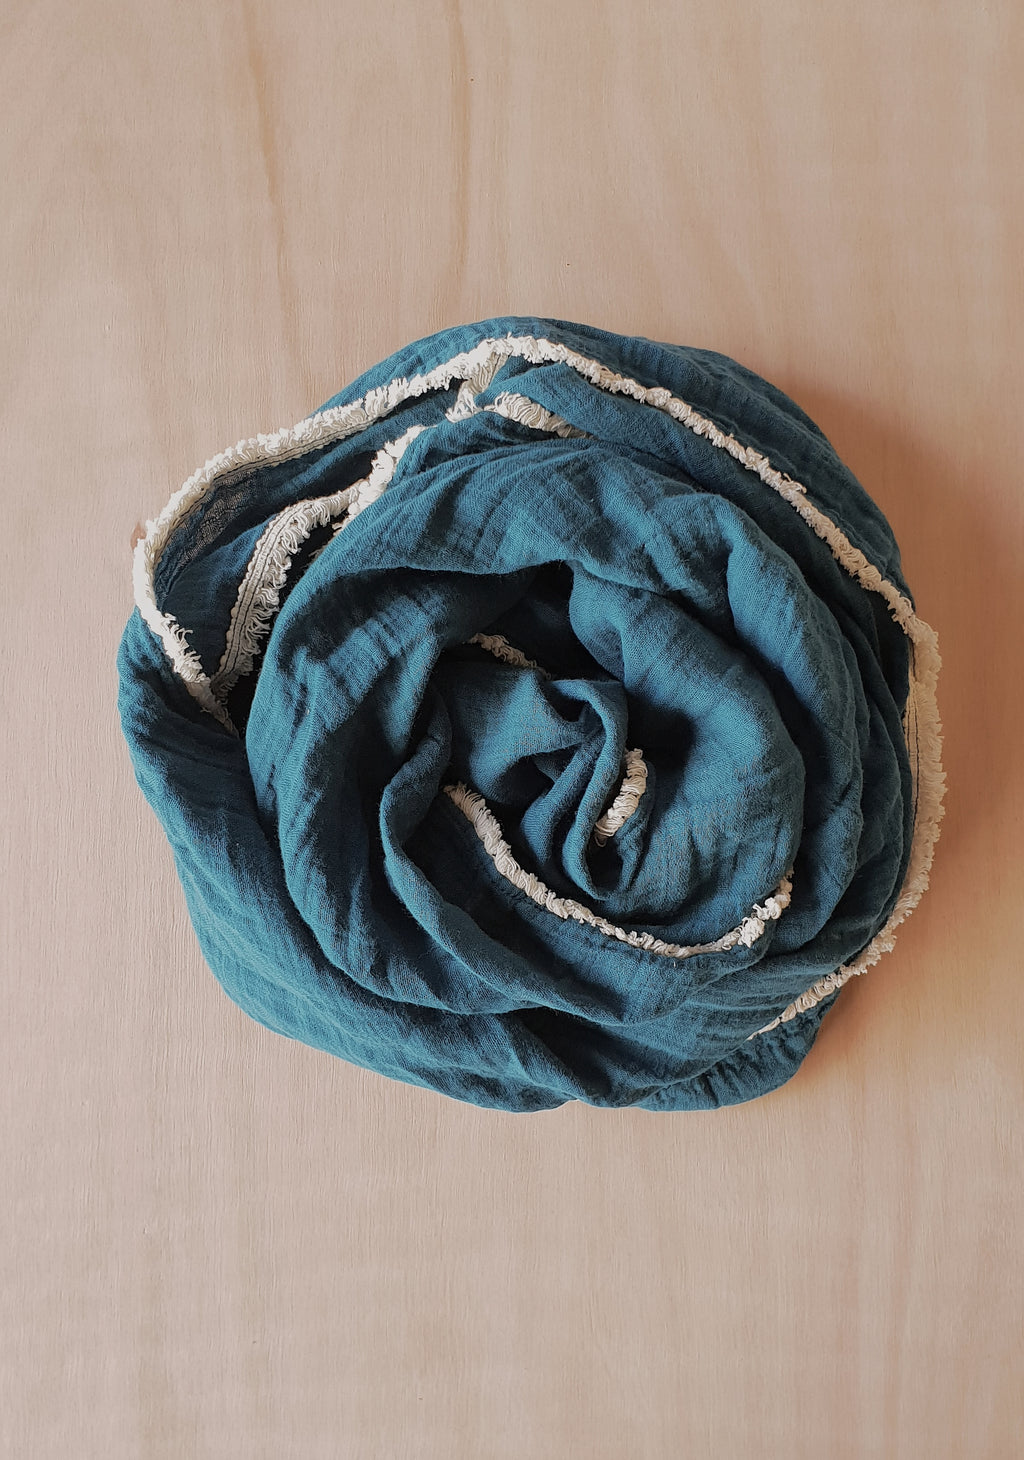 *PRE-ORDER* Organic Cotton Muslin Wrap with tassel – Casablanca Tides